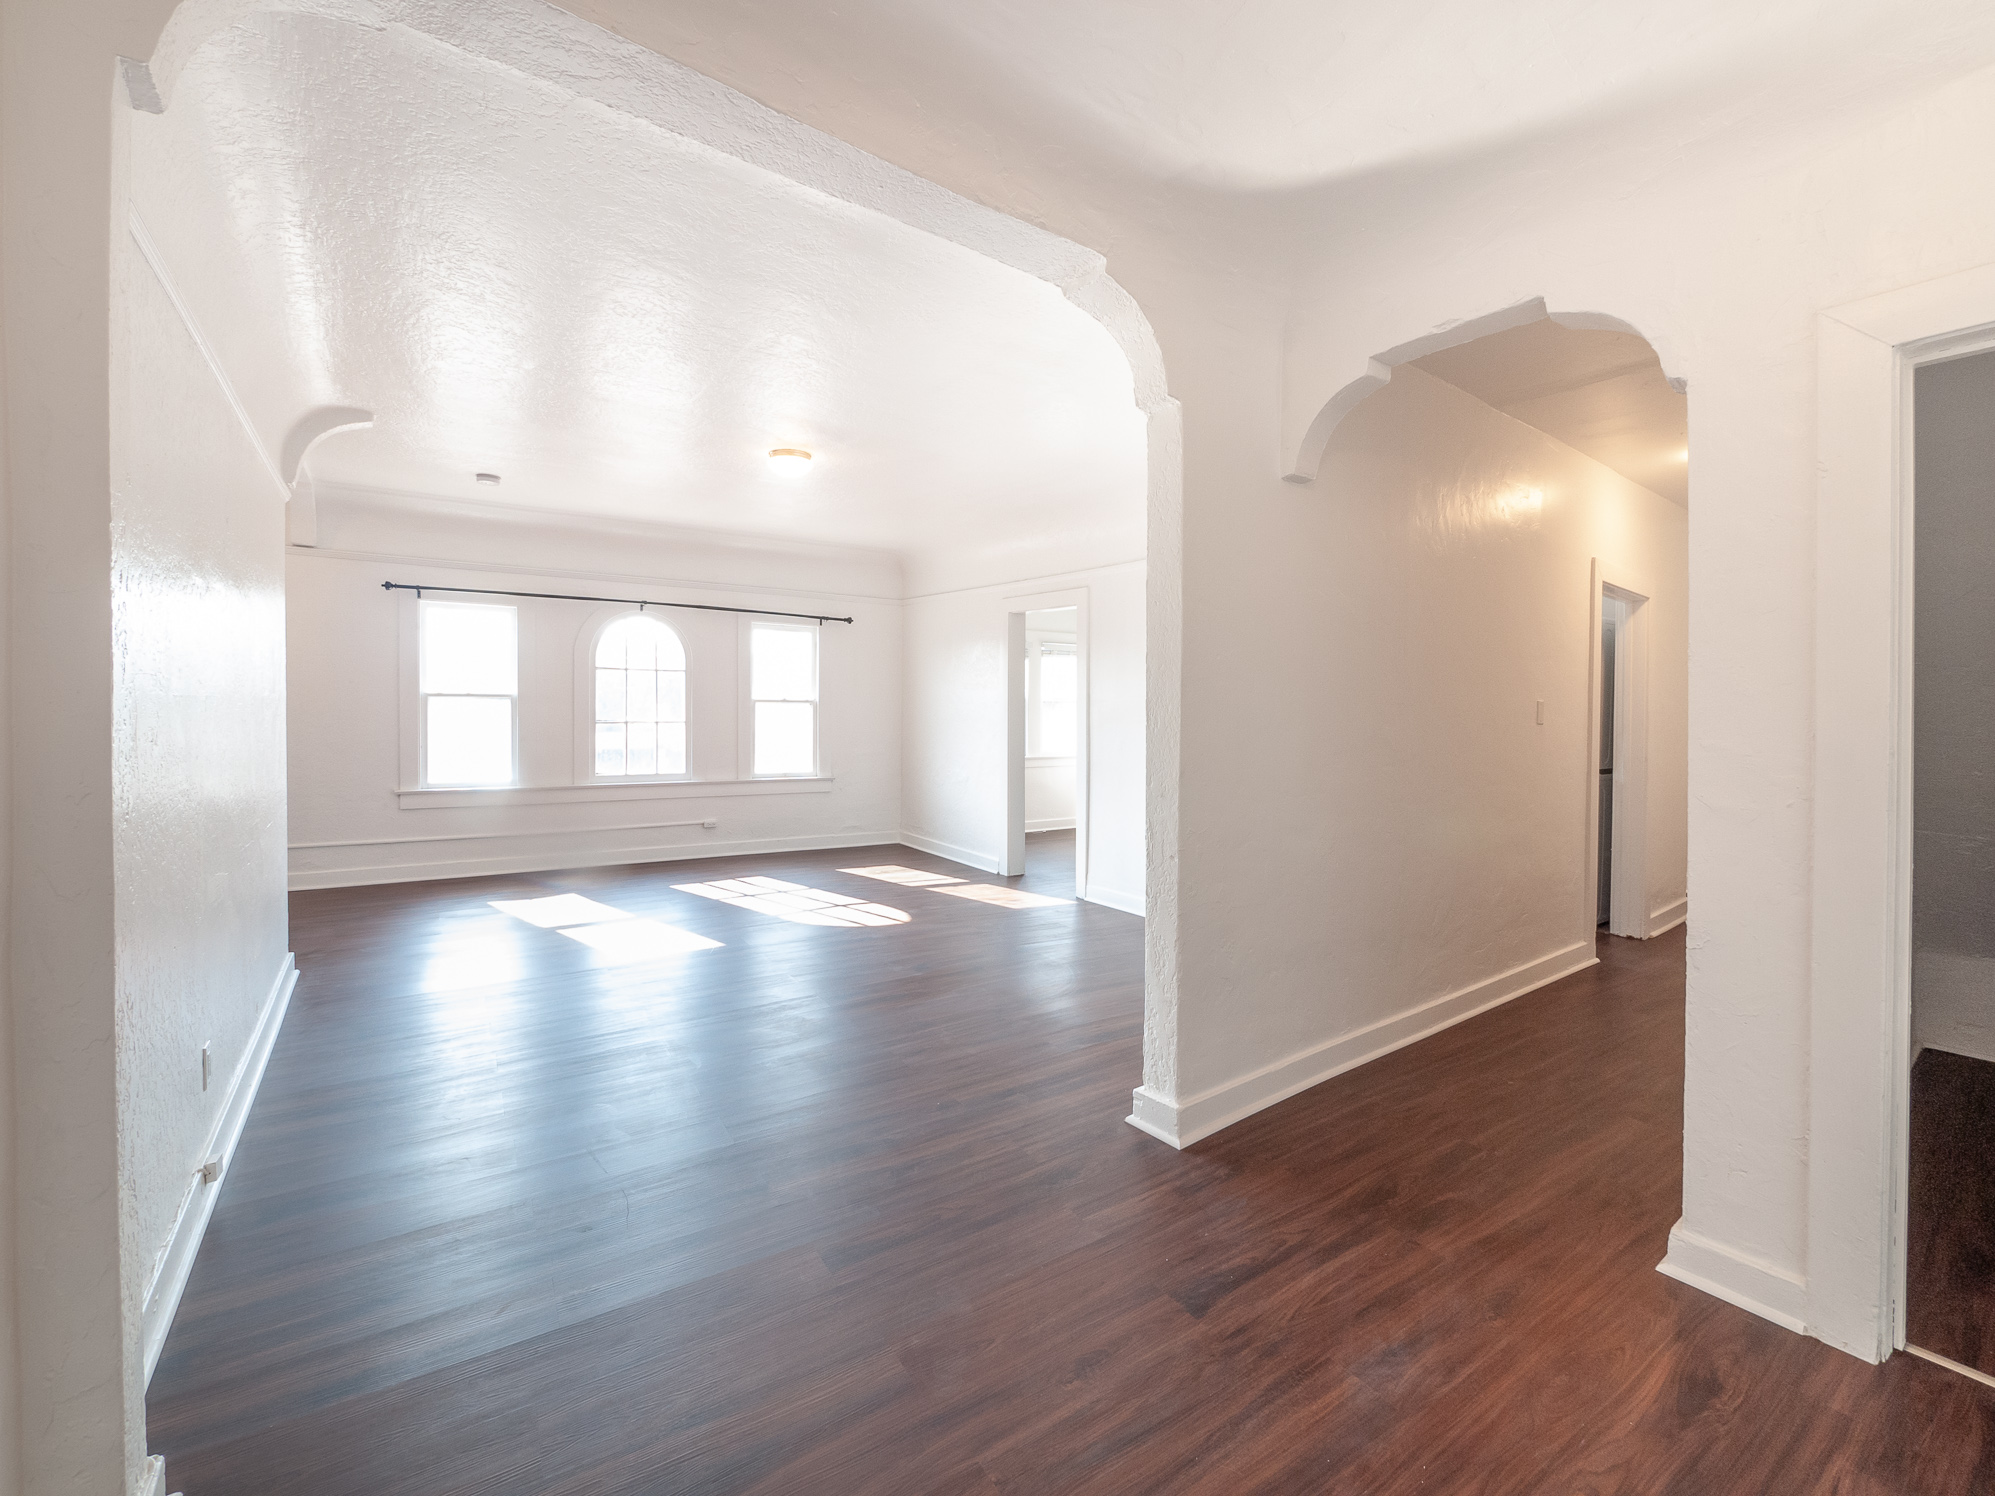 Freshly updated Large & Bright 1 bedroom w/ TONS of bonus space and closets | Italian Architecture building